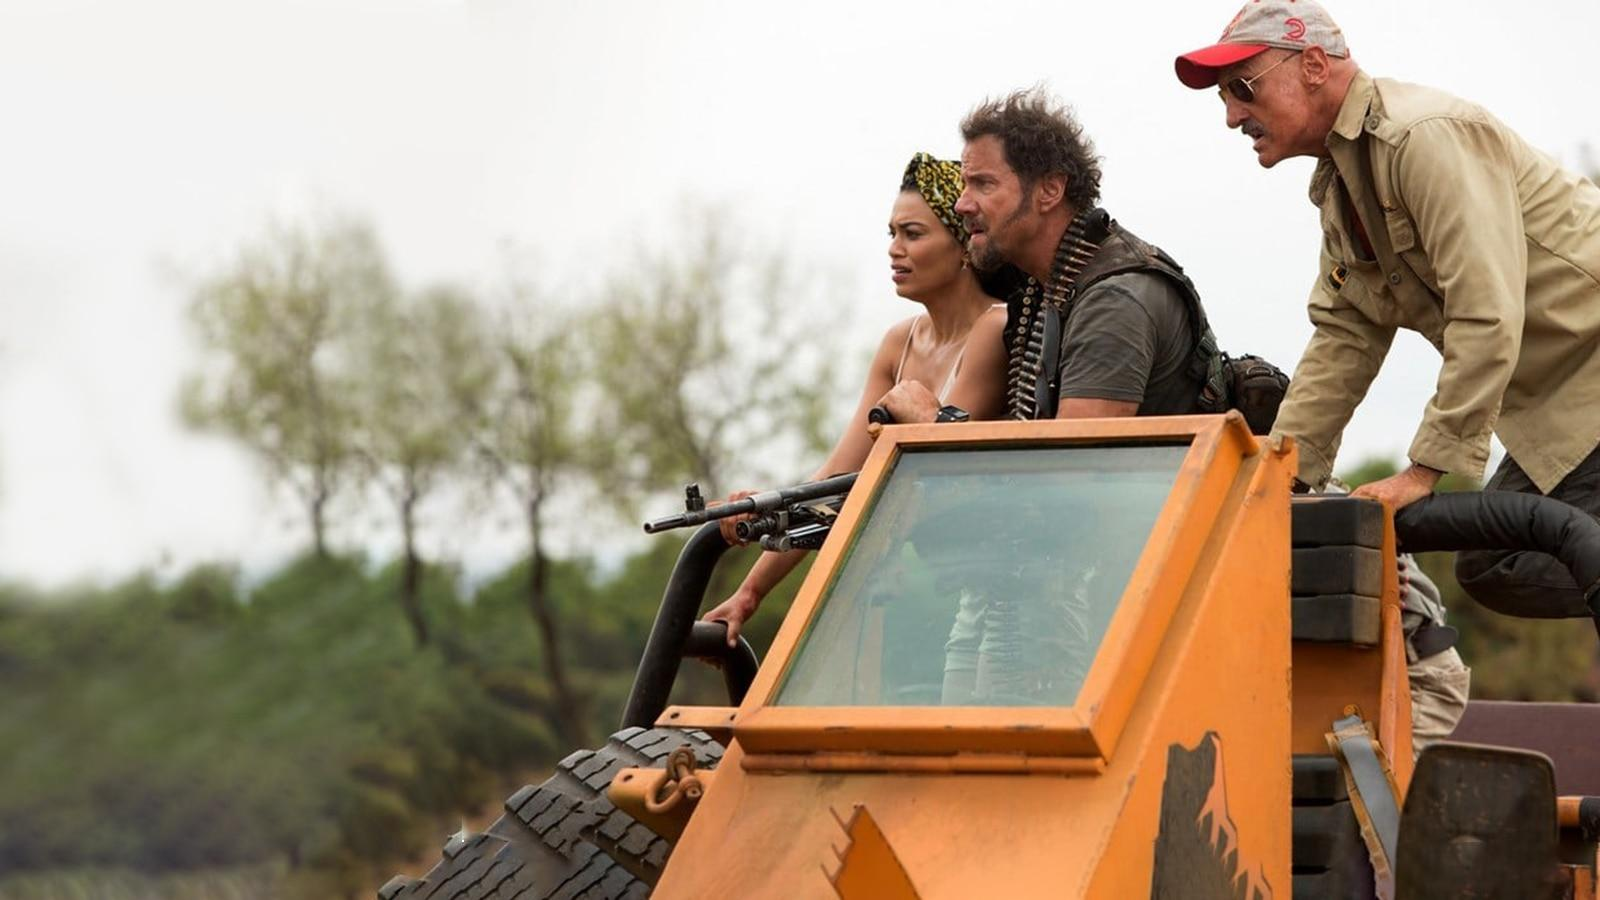 Premium Cinema 1 Tremors 5: bloodlines